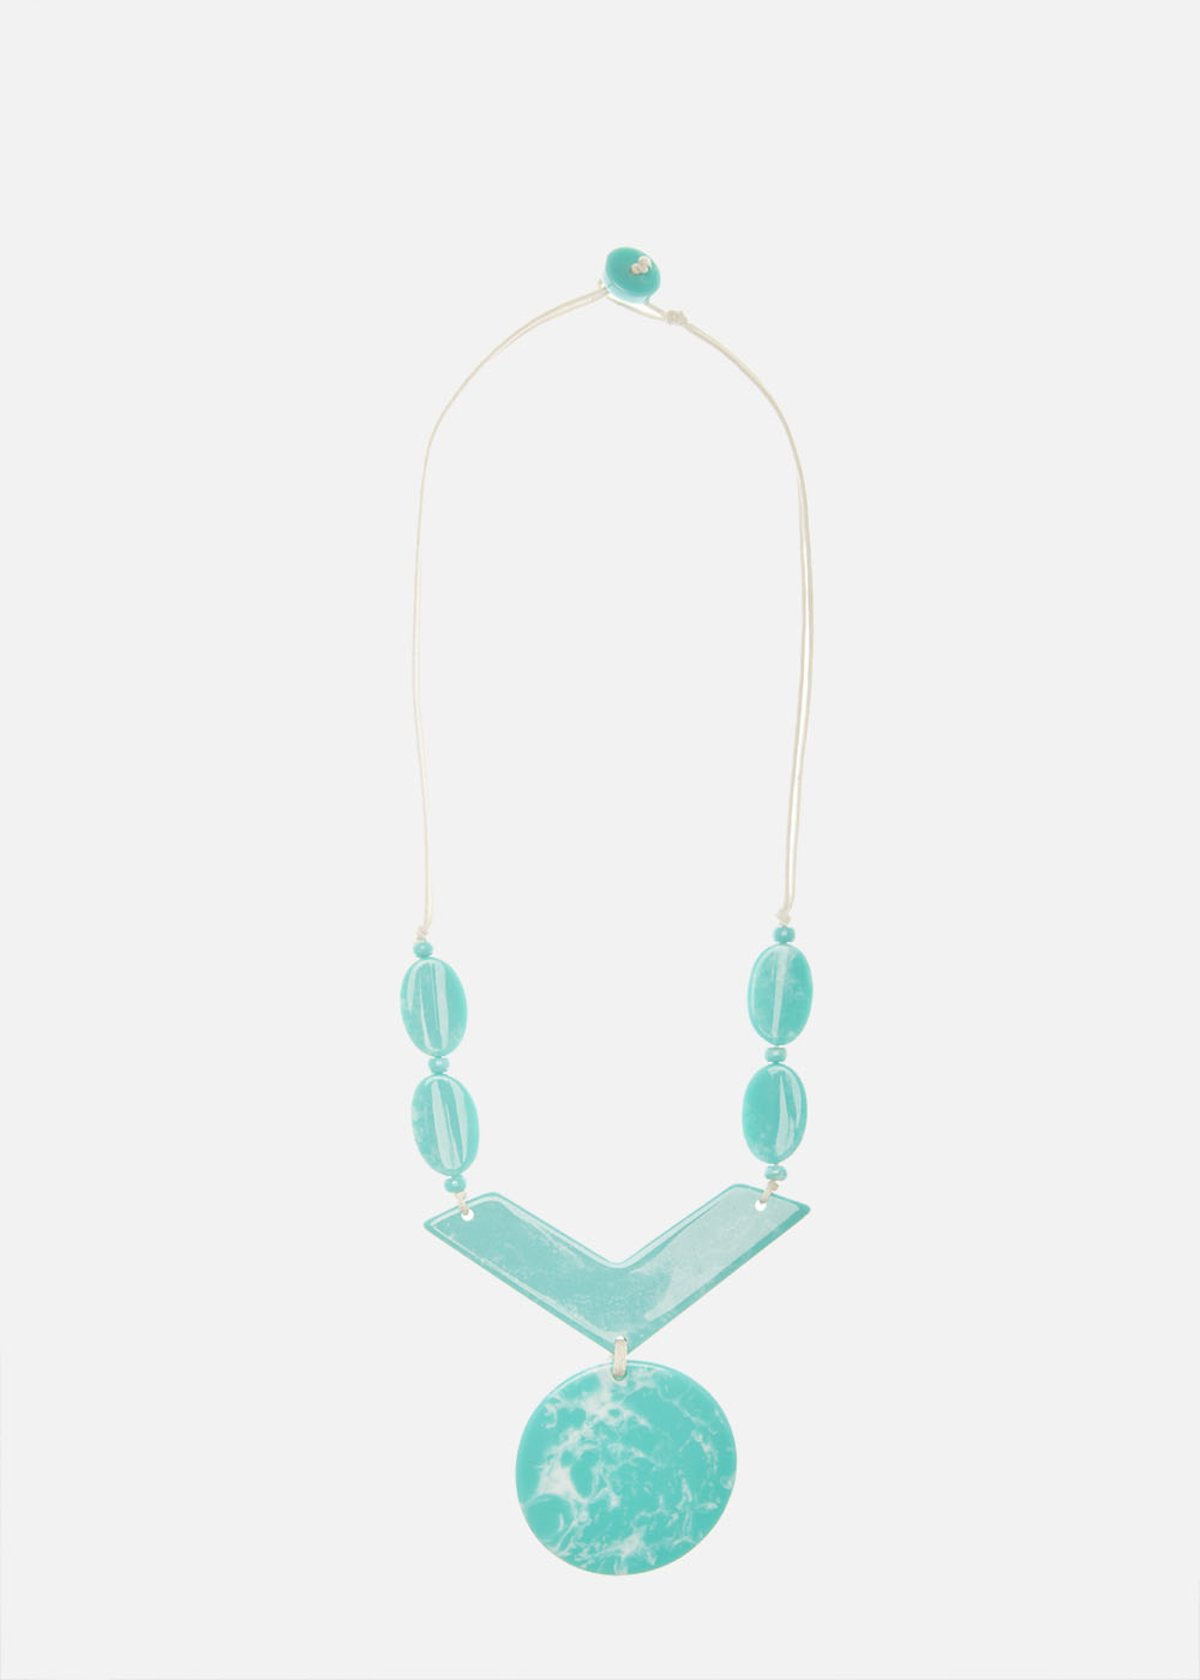 Collana Caloa in resina con pietre turchesi - Turquoise / Avion